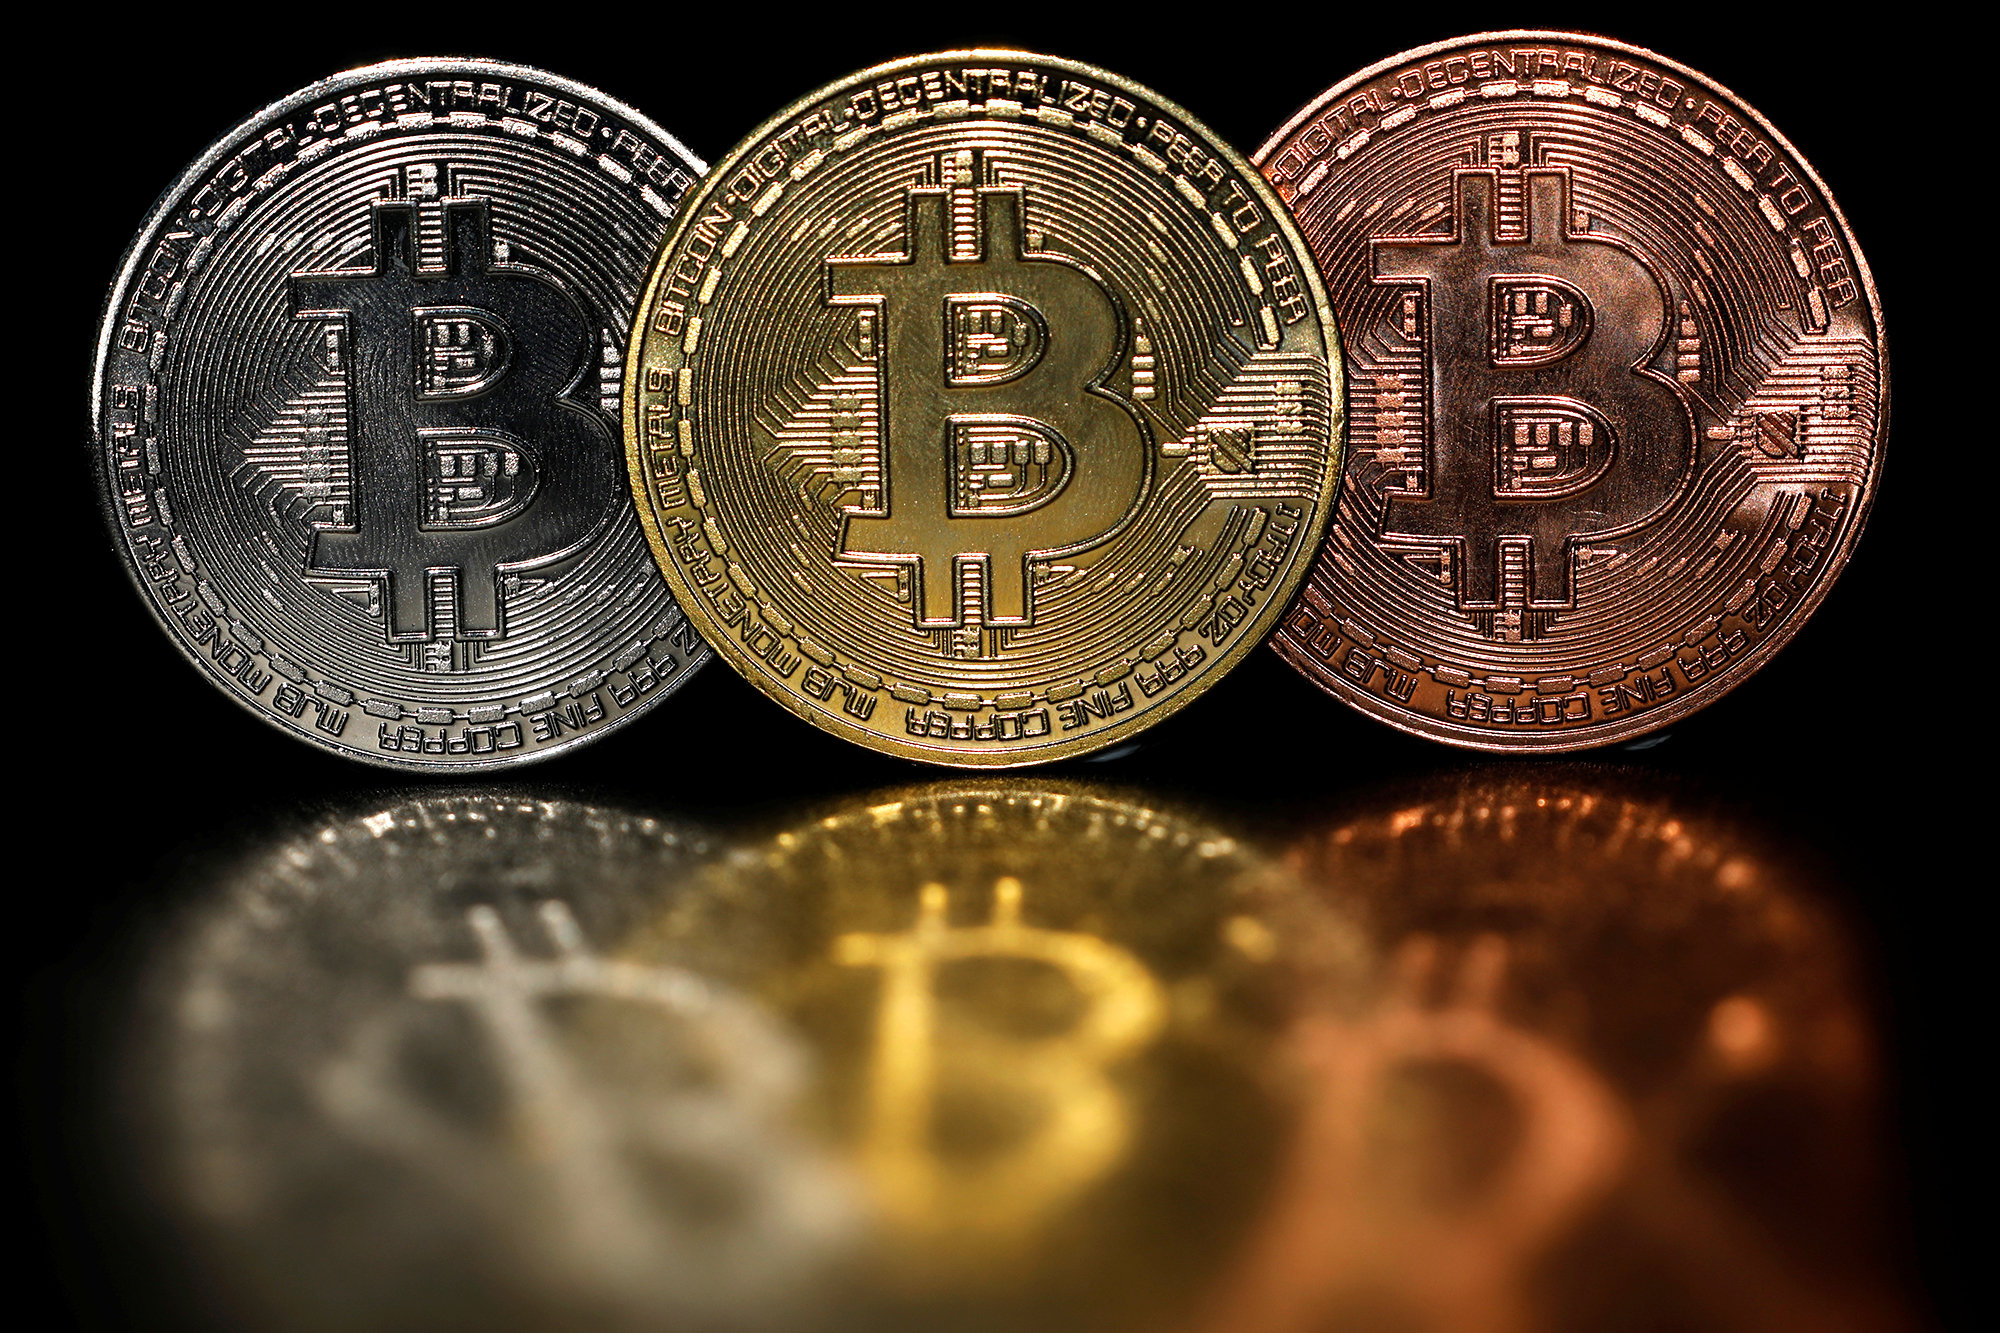 Exchange Bitcoin and Ether with EURO - Get BTC and ETH for Euro